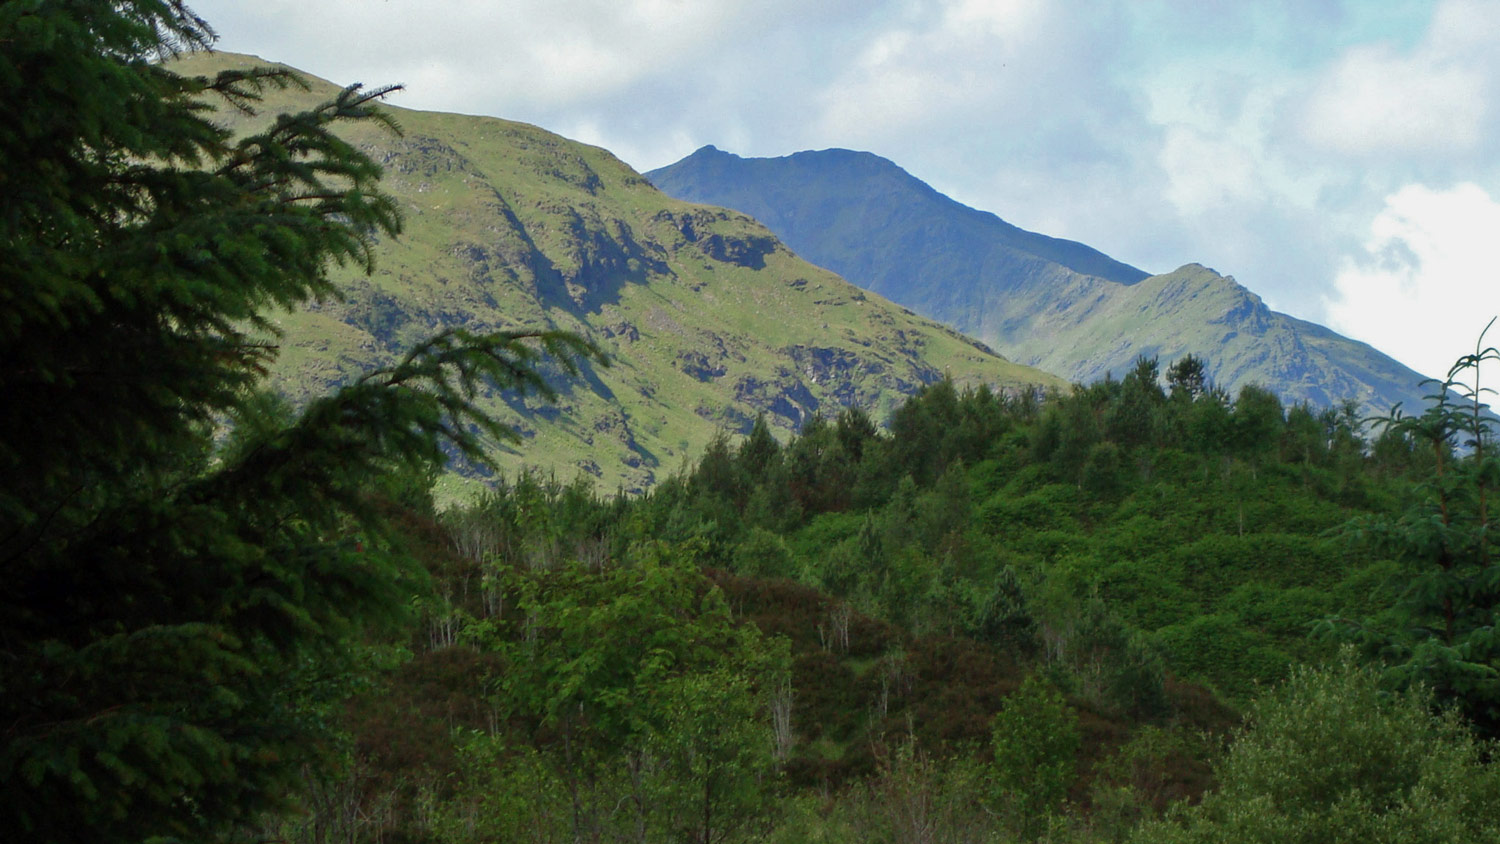 Ben Lui appears from behind the trees.